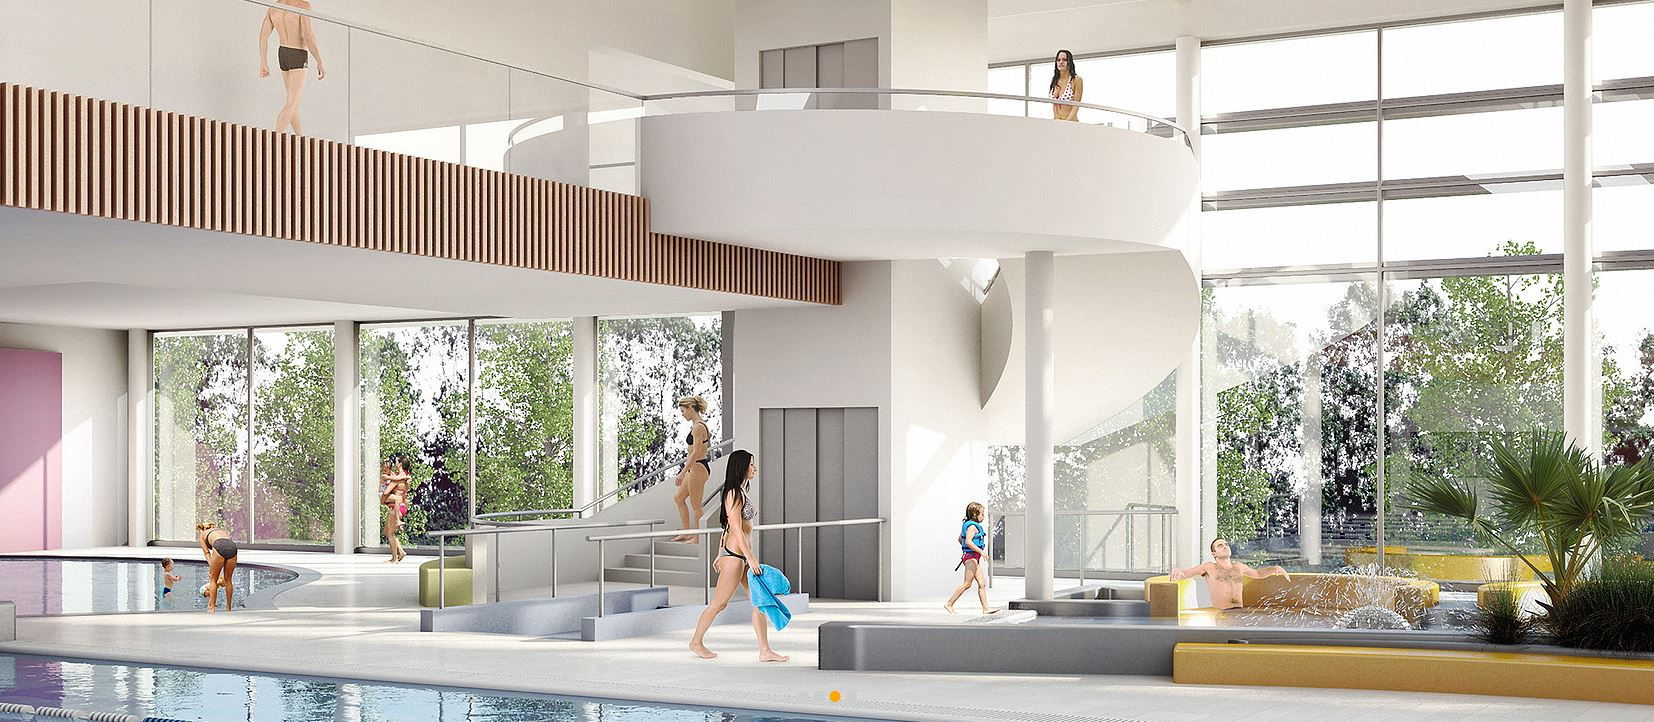 Le futur centre aquatique de vitry sur seine en images for Tarif piscine enterree posee